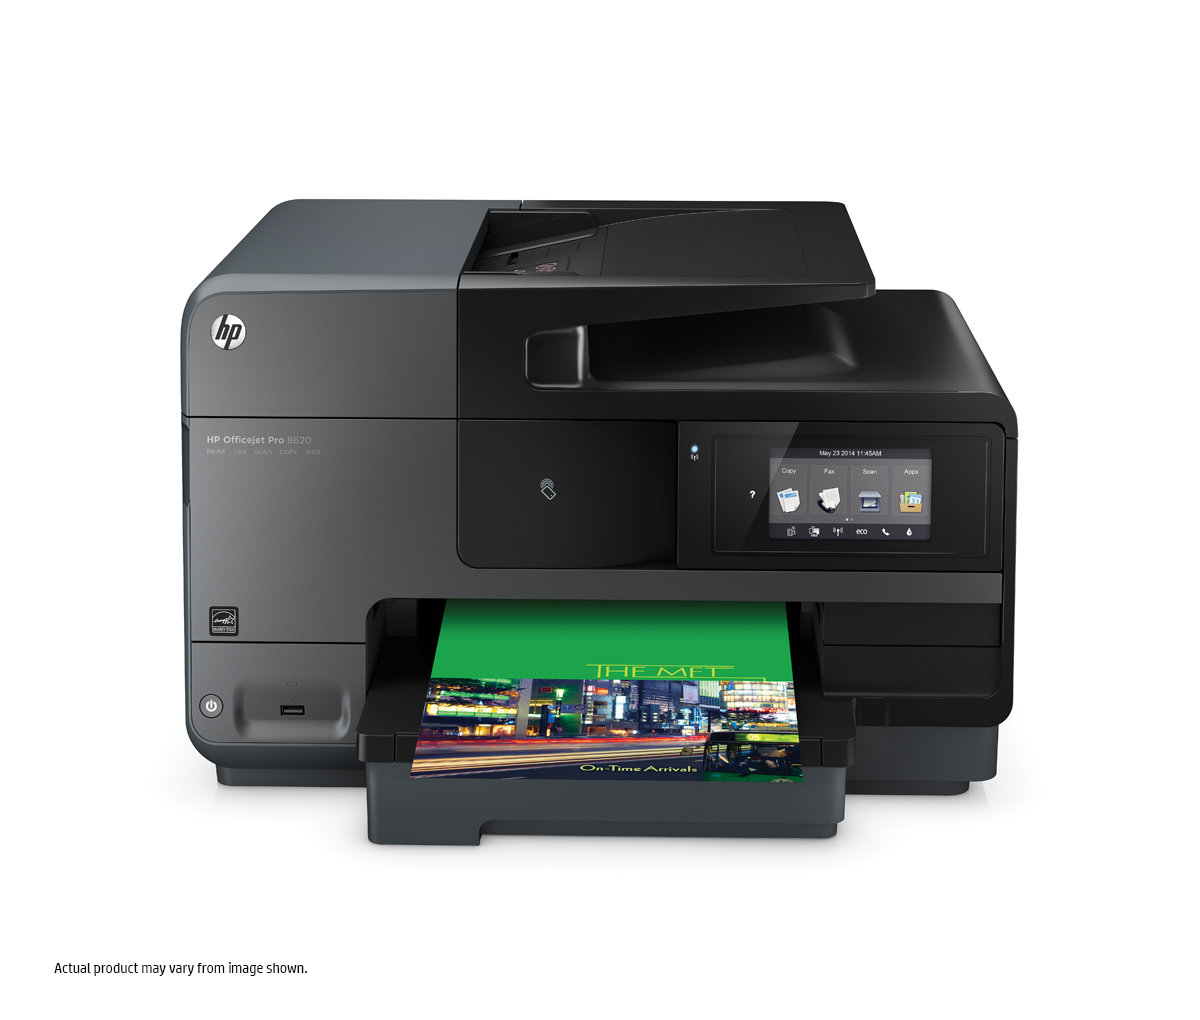 Amazon.com: HP Officejet Pro 8620 Wireless All-in-One ...